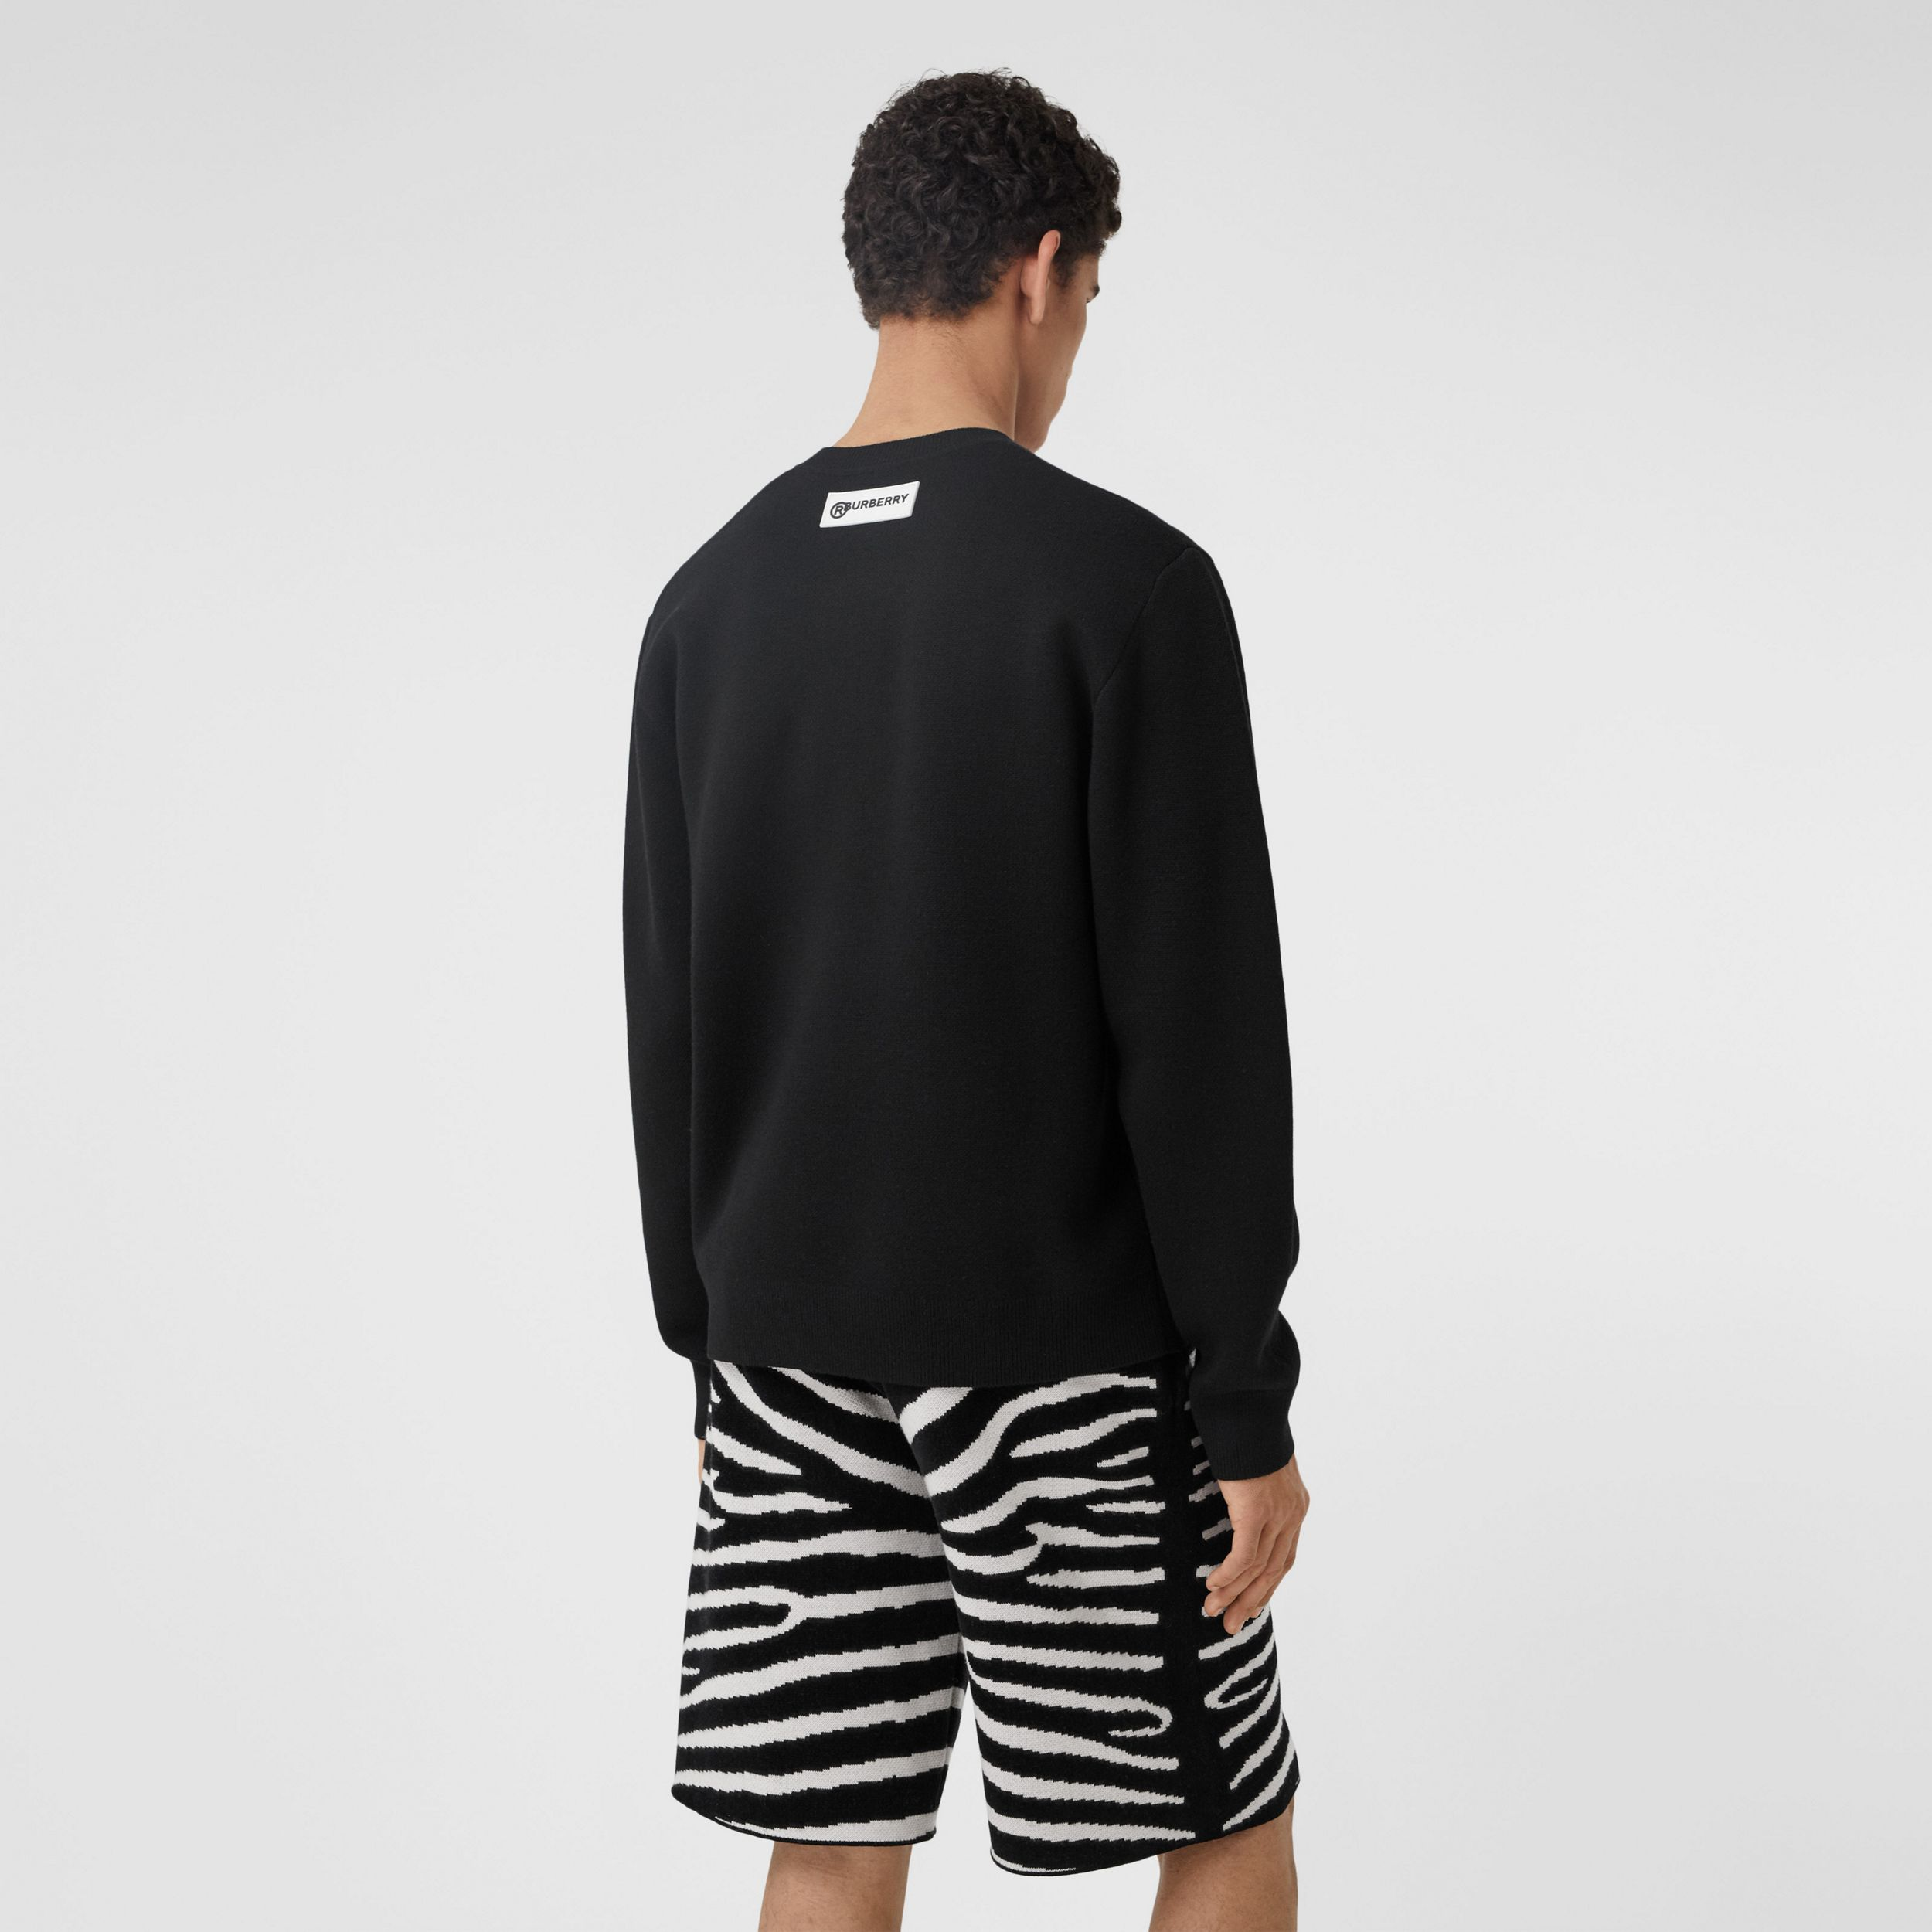 Zebra Wool Jacquard Sweater in Black - Men | Burberry - 3